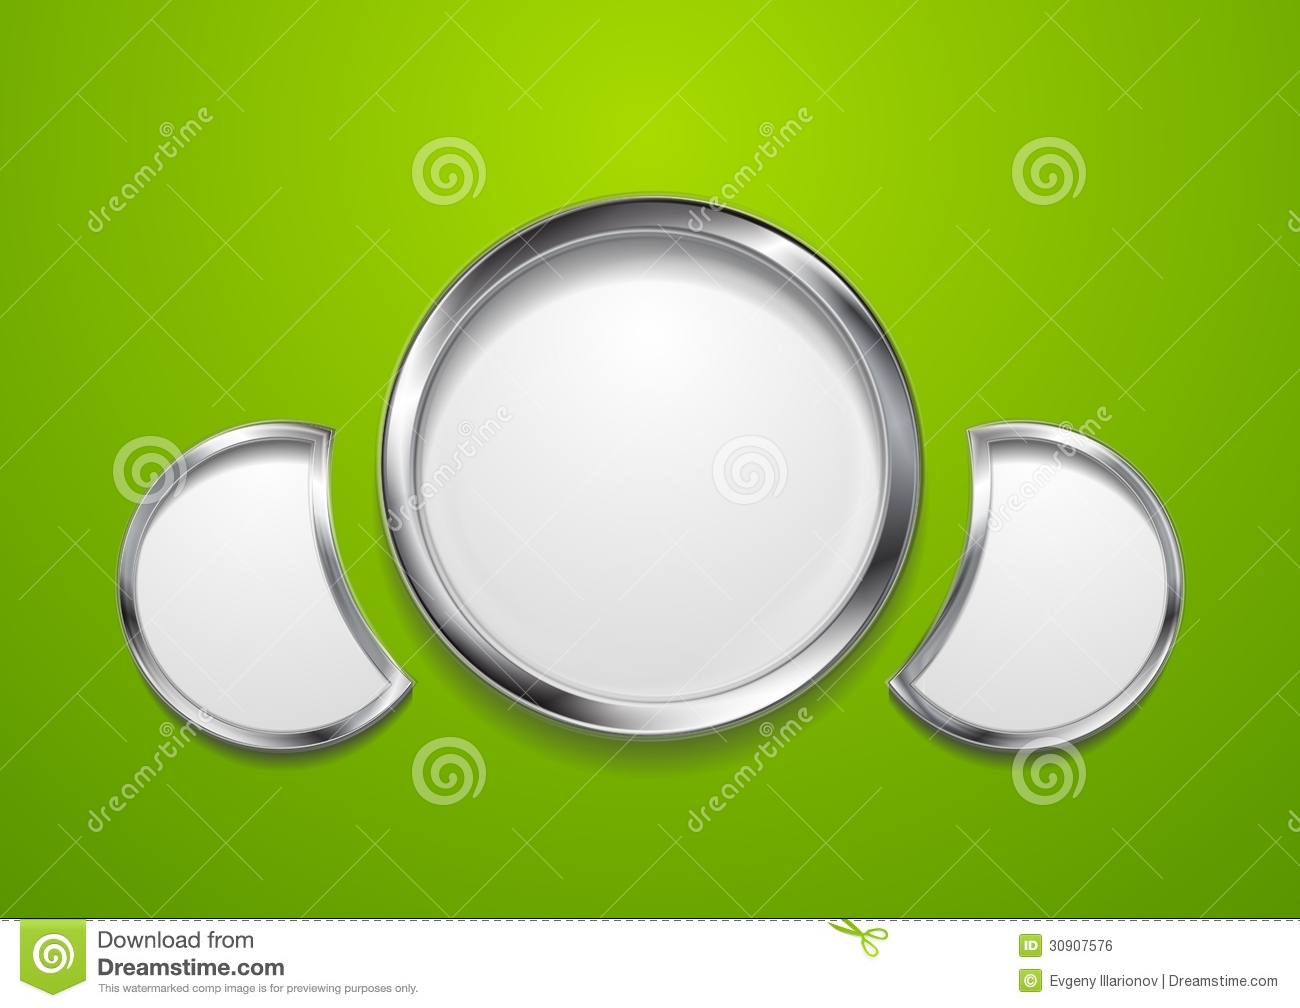 ... Design With Round Shapes Royalty Free Stock Image - Image: 30907576